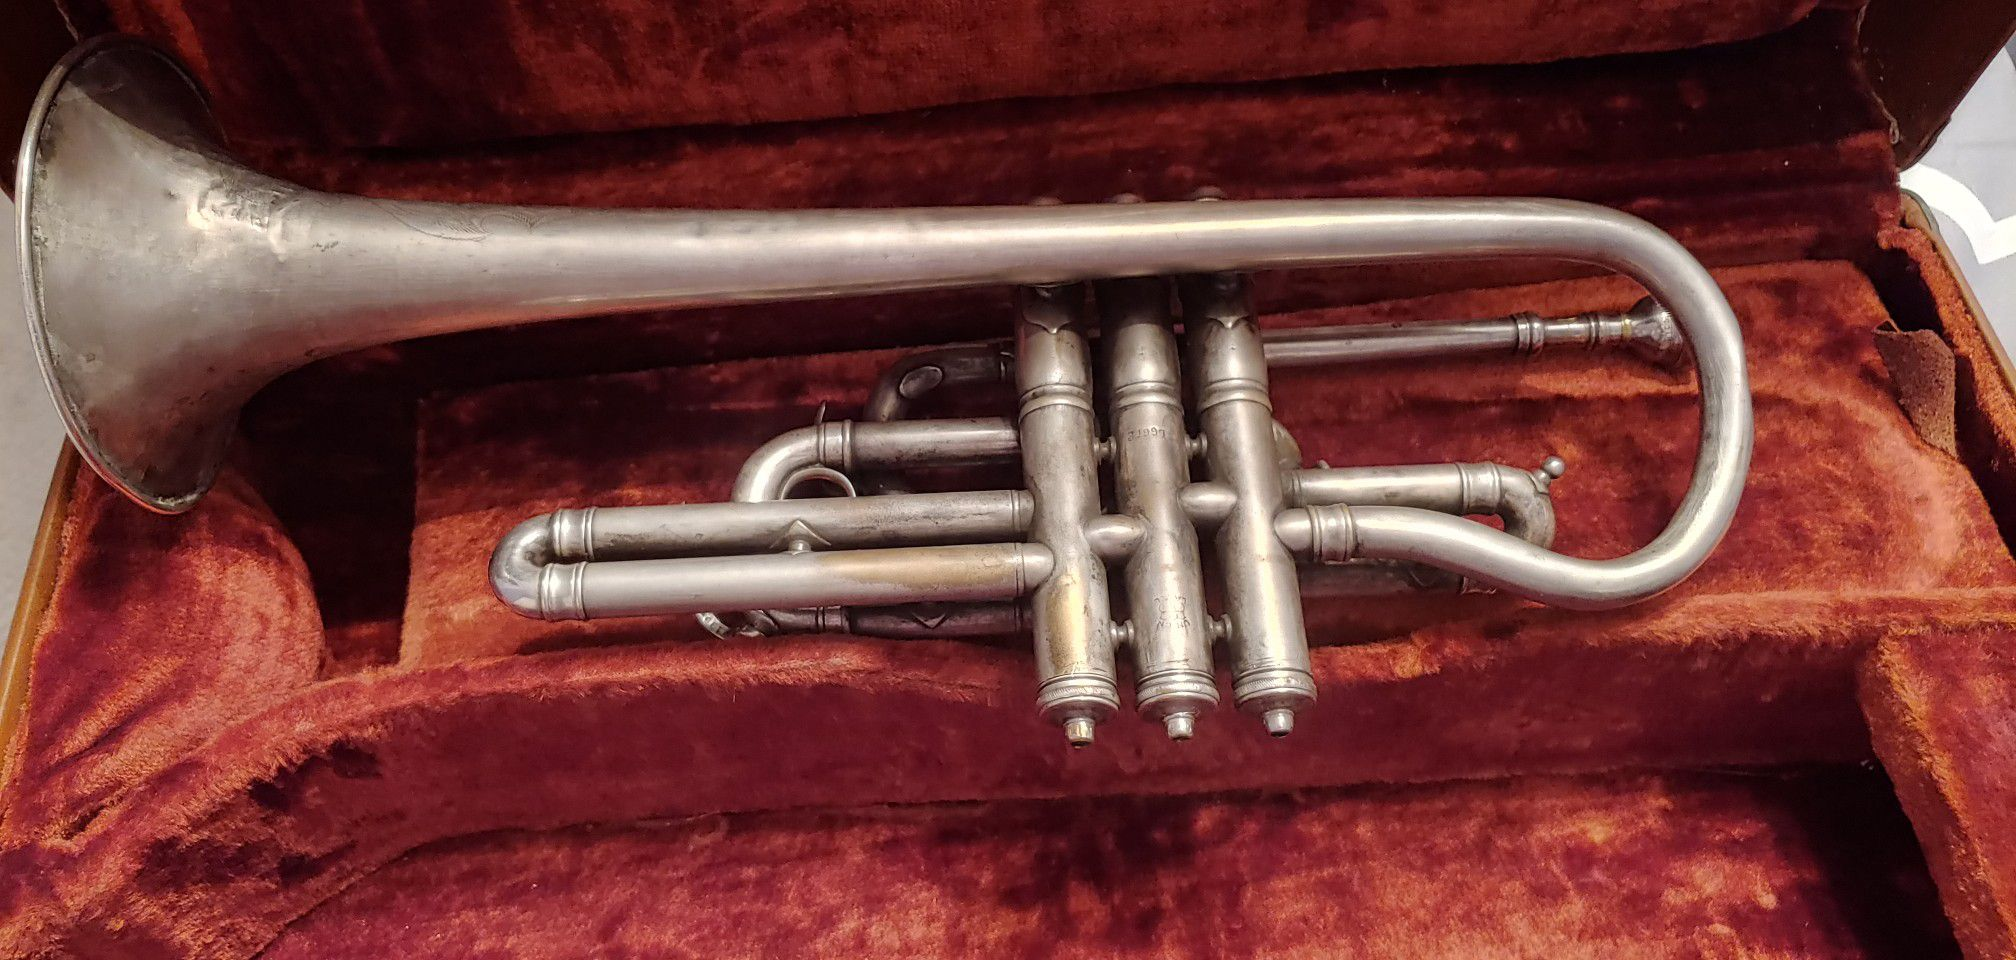 Very old classic 1910 York Trumpet with some engravings.